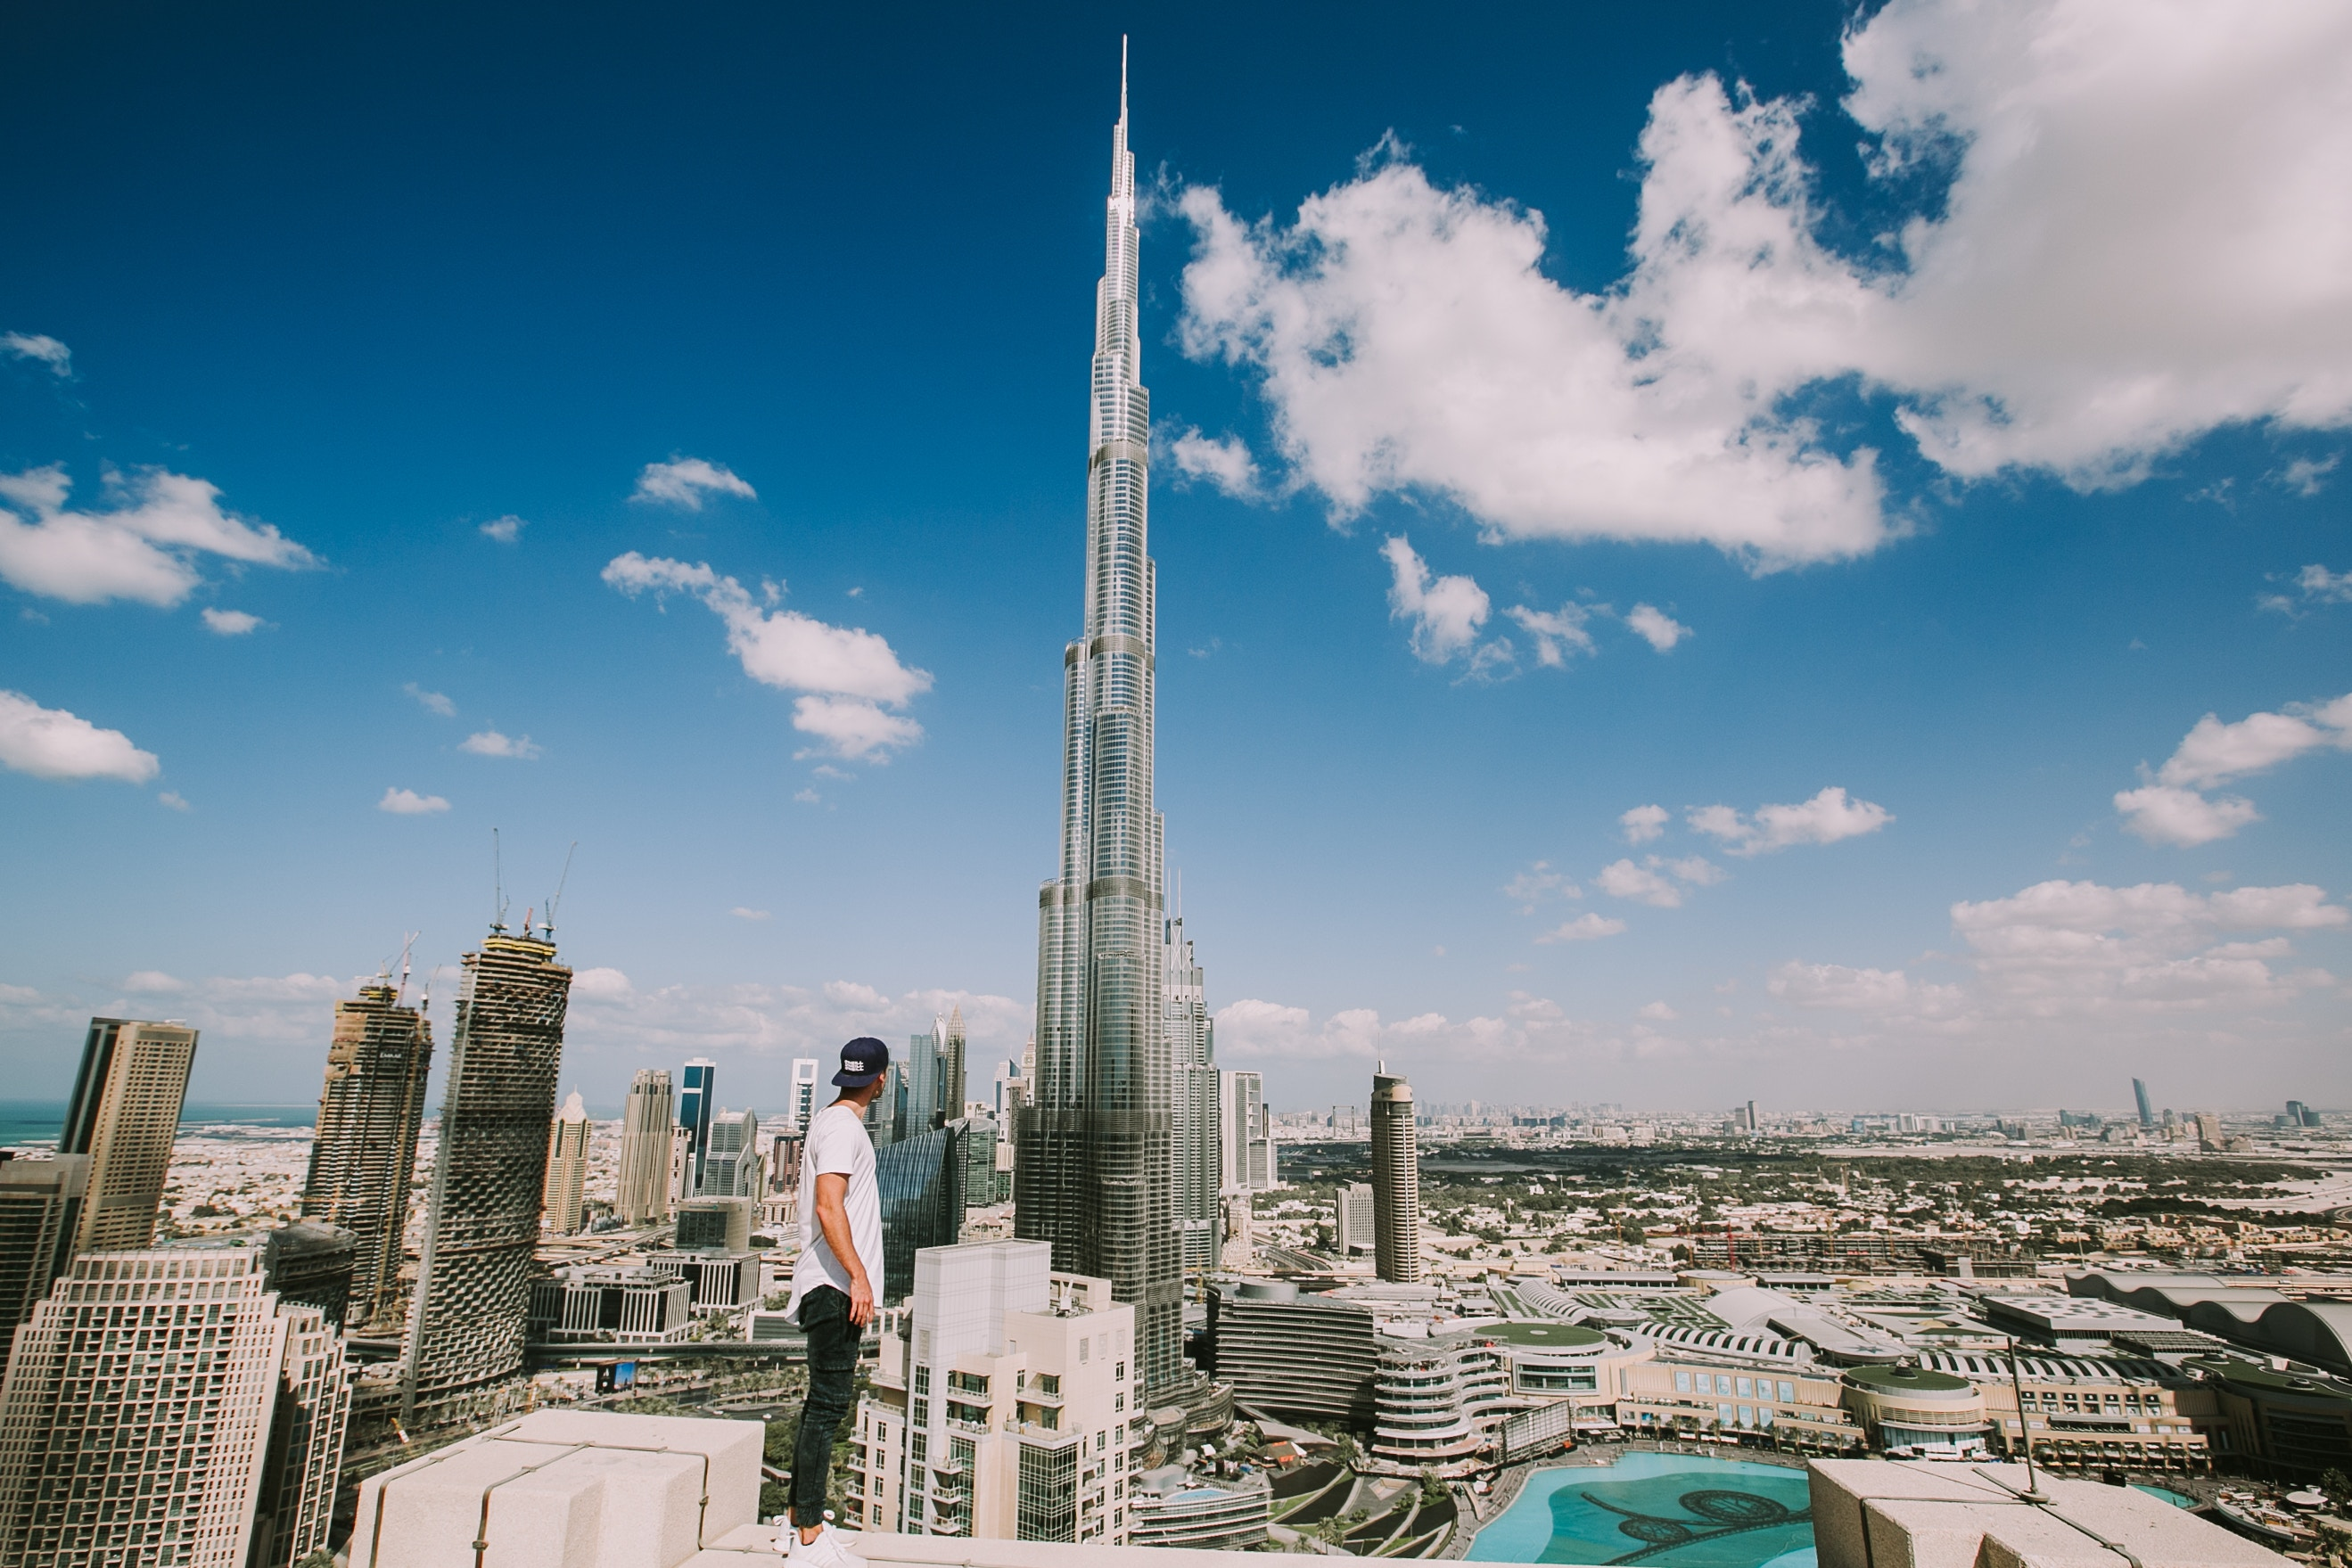 Dubai City Tour- Burj Khalifa- Explore Old And Modern Dubai - Travel Fube